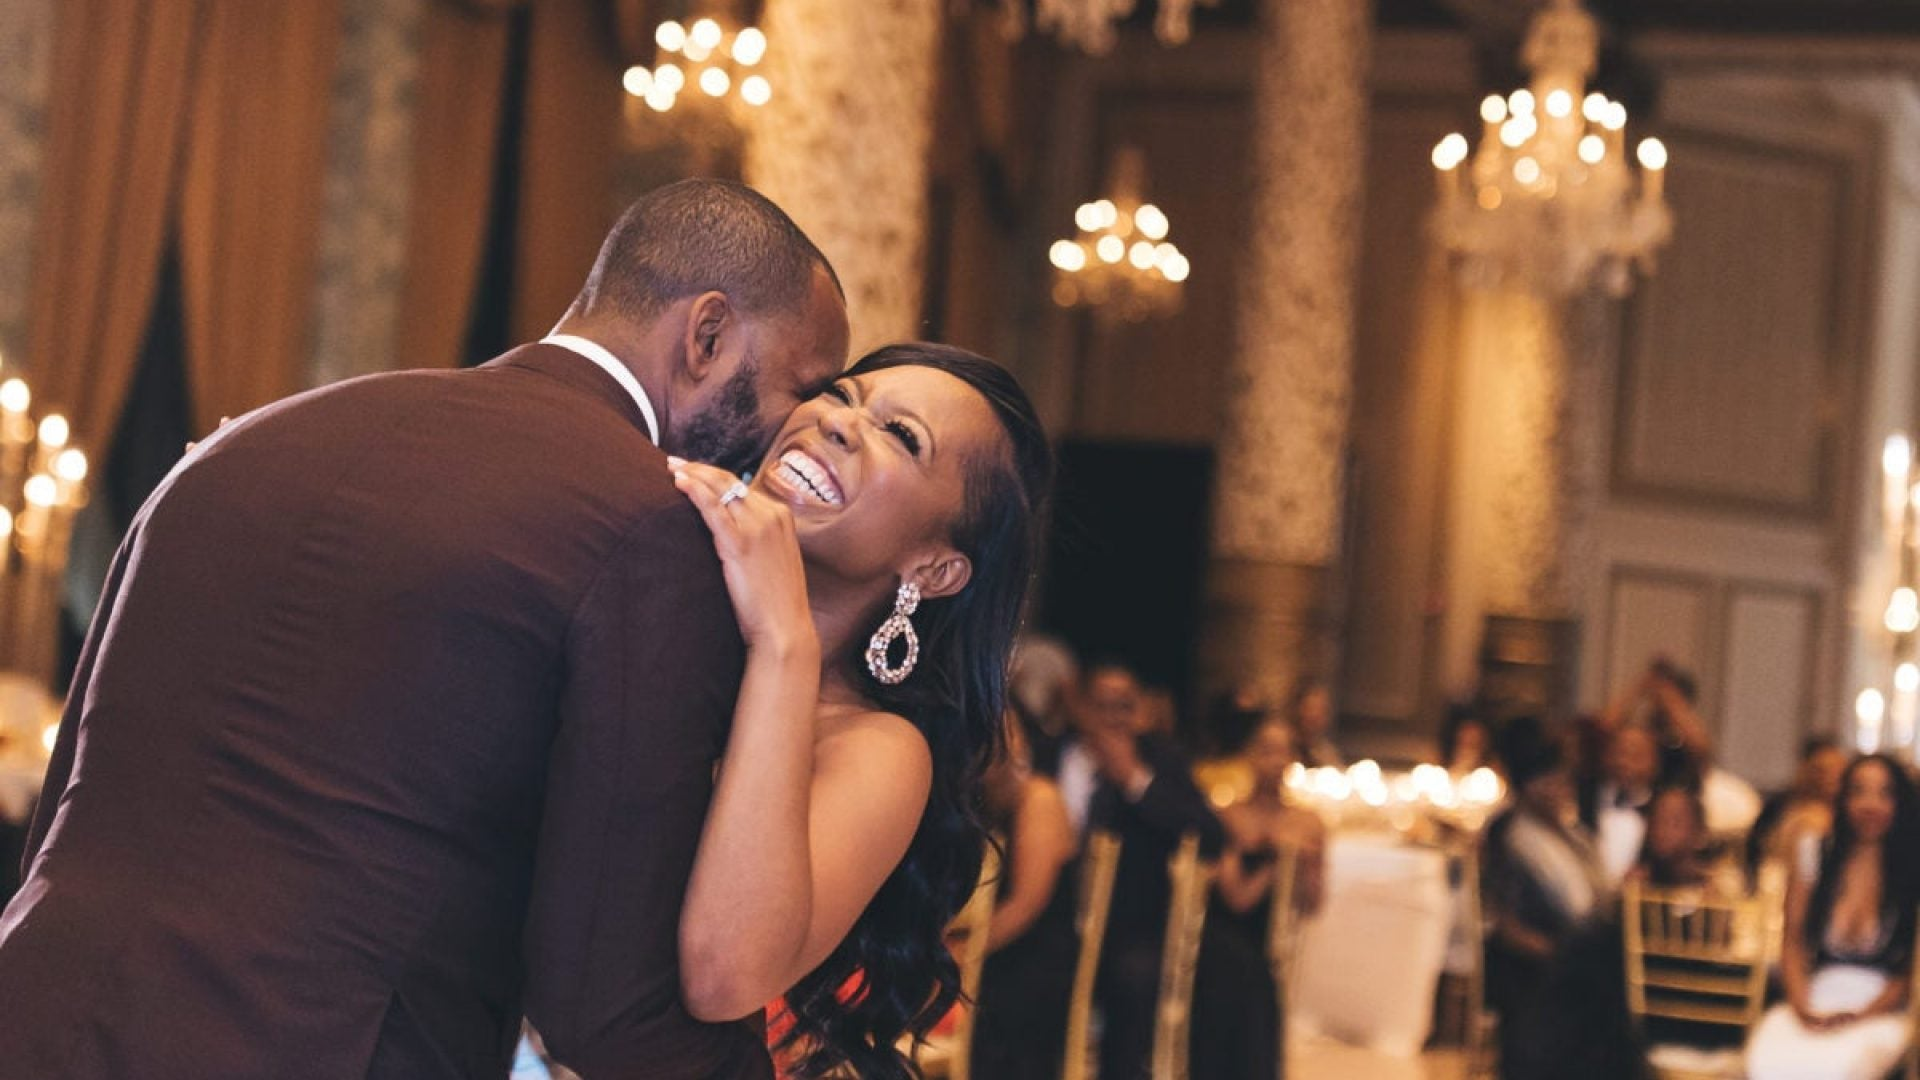 Bridal Bliss 2019 Awards! These Are The Couple That Stunned